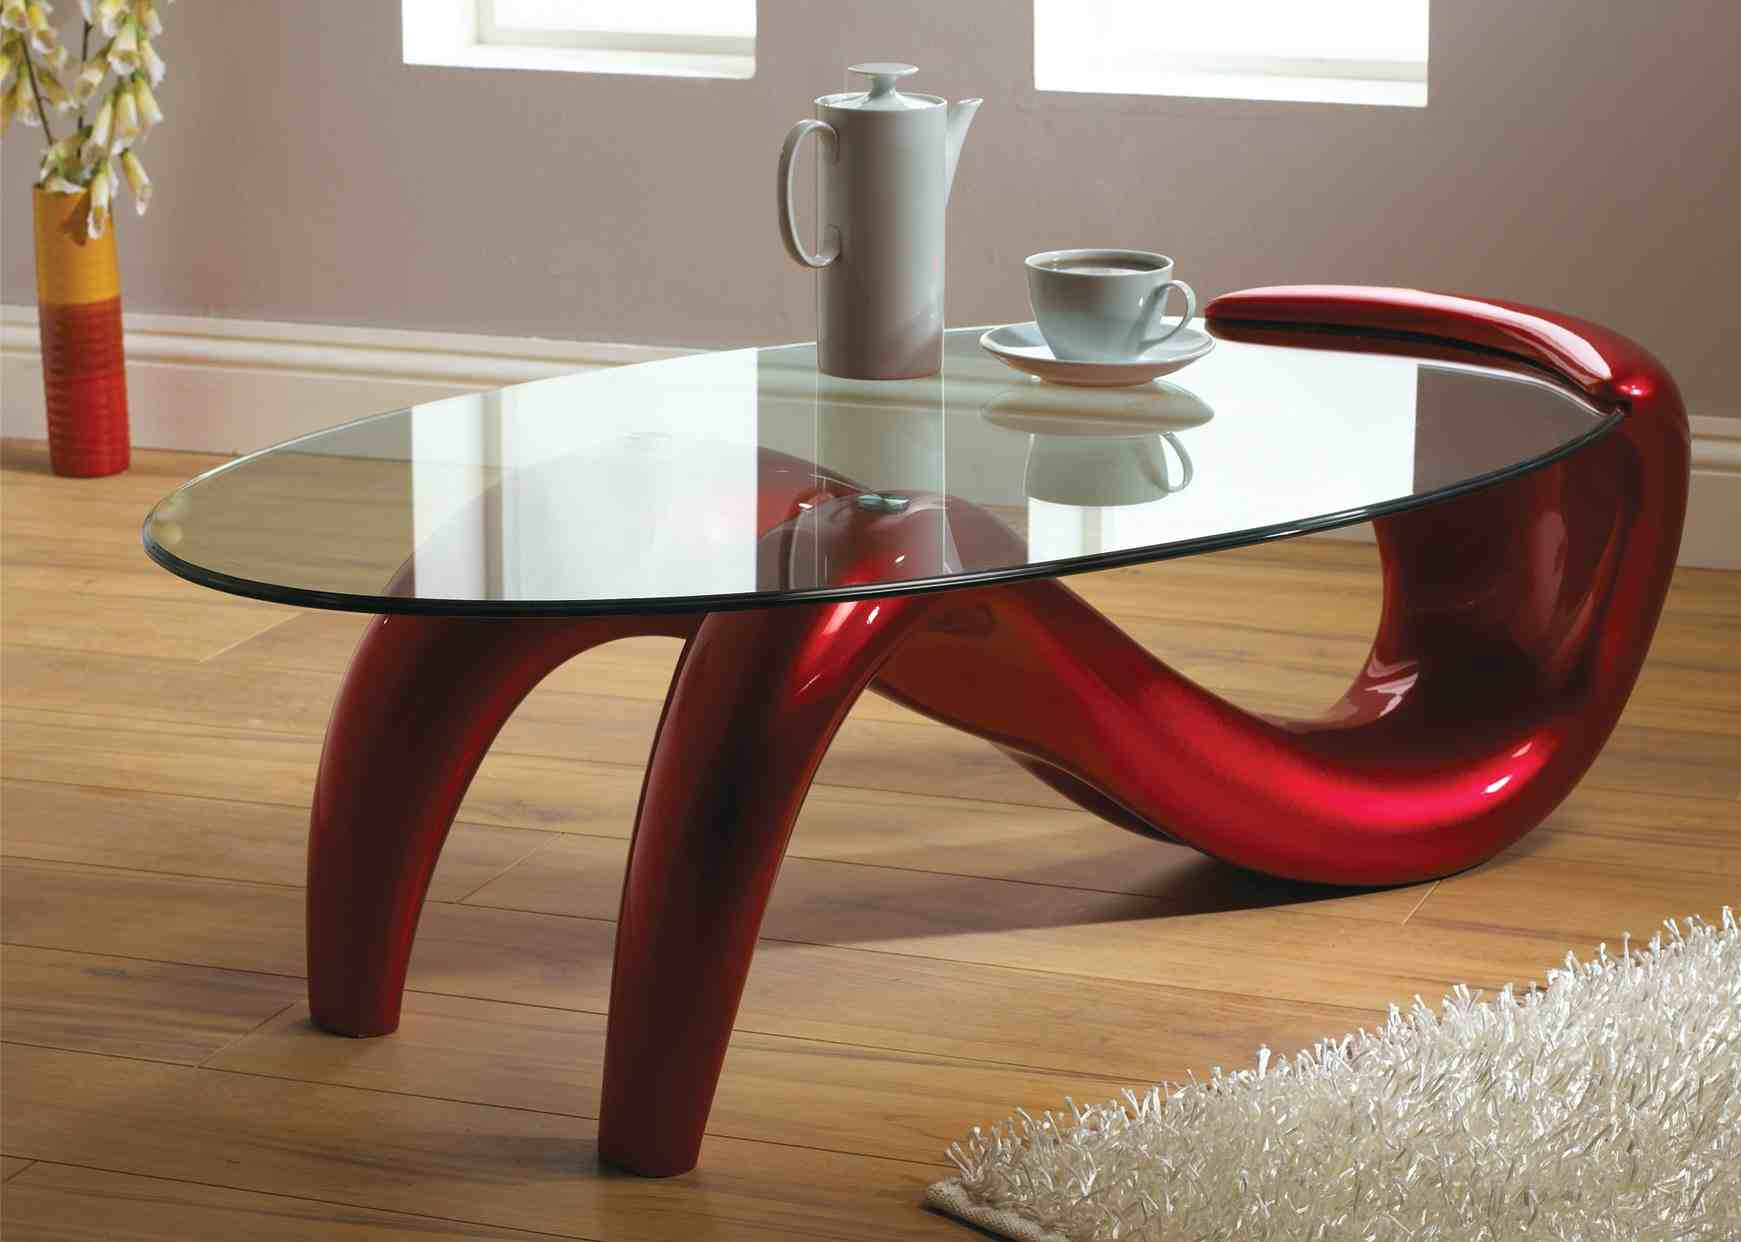 Modern glass coffee table design images photos pictures Glass contemporary coffee table